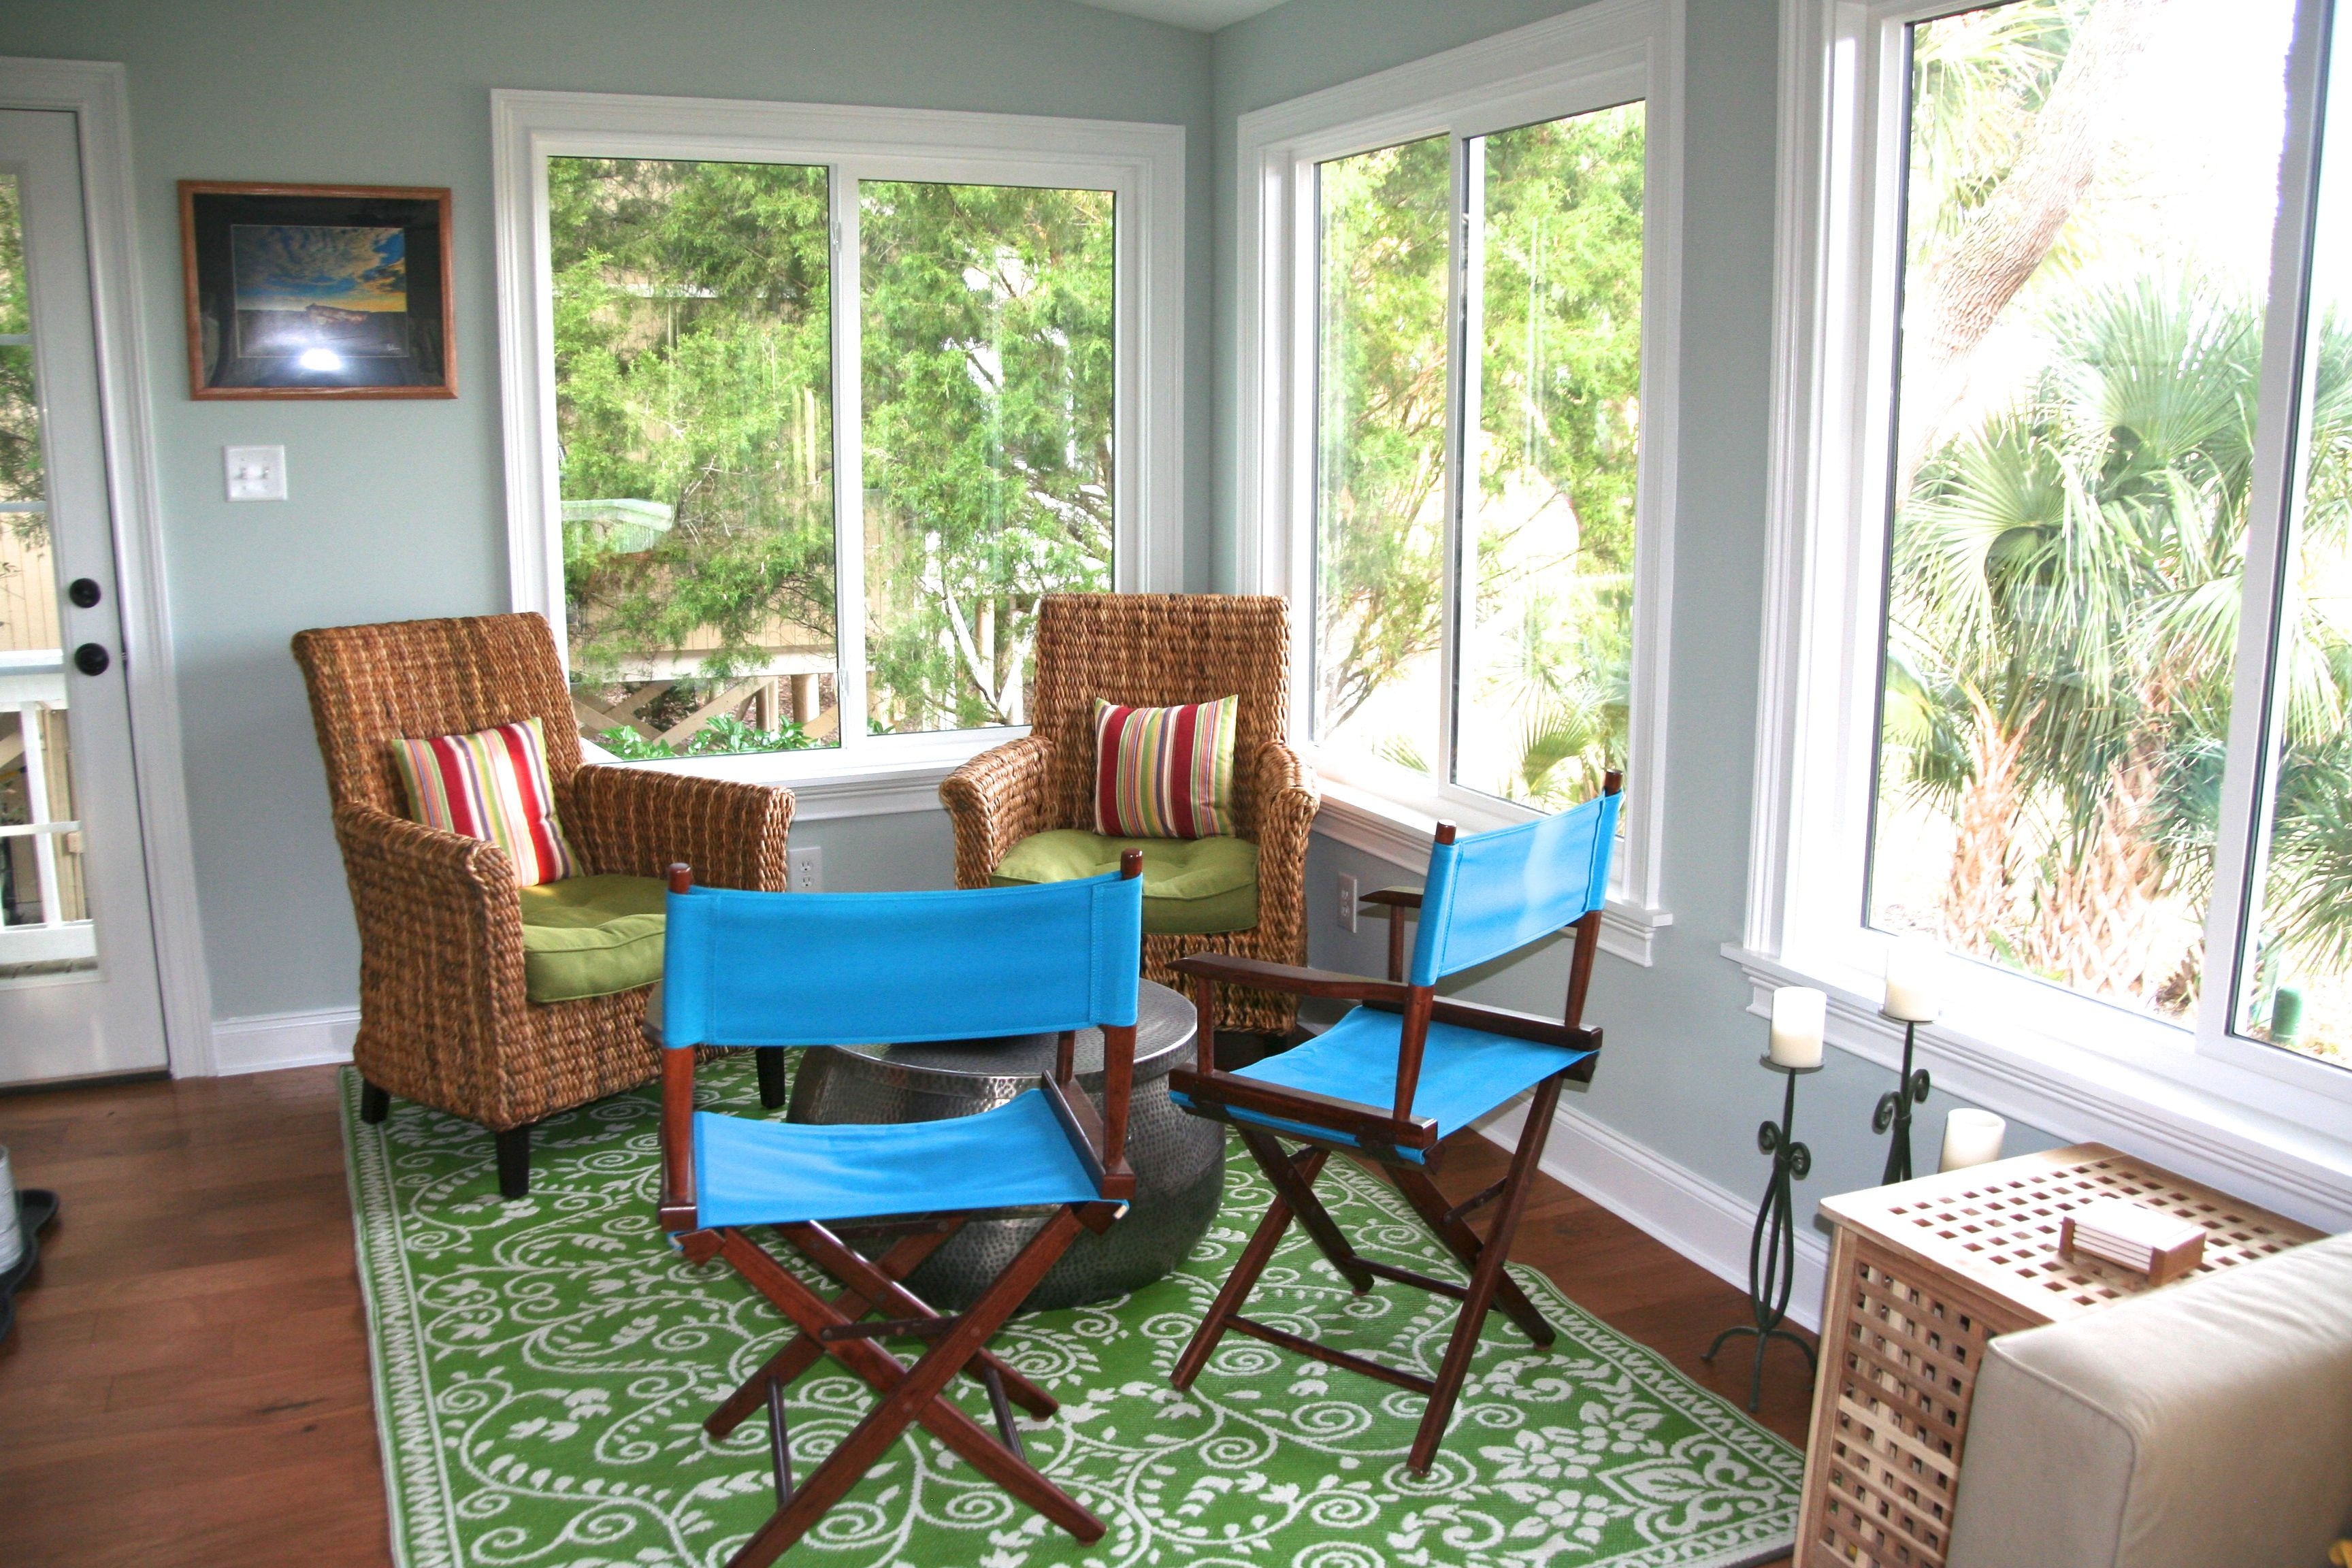 Bright, sunny, welcoming! The perfect addition to an already wonderful cottage.